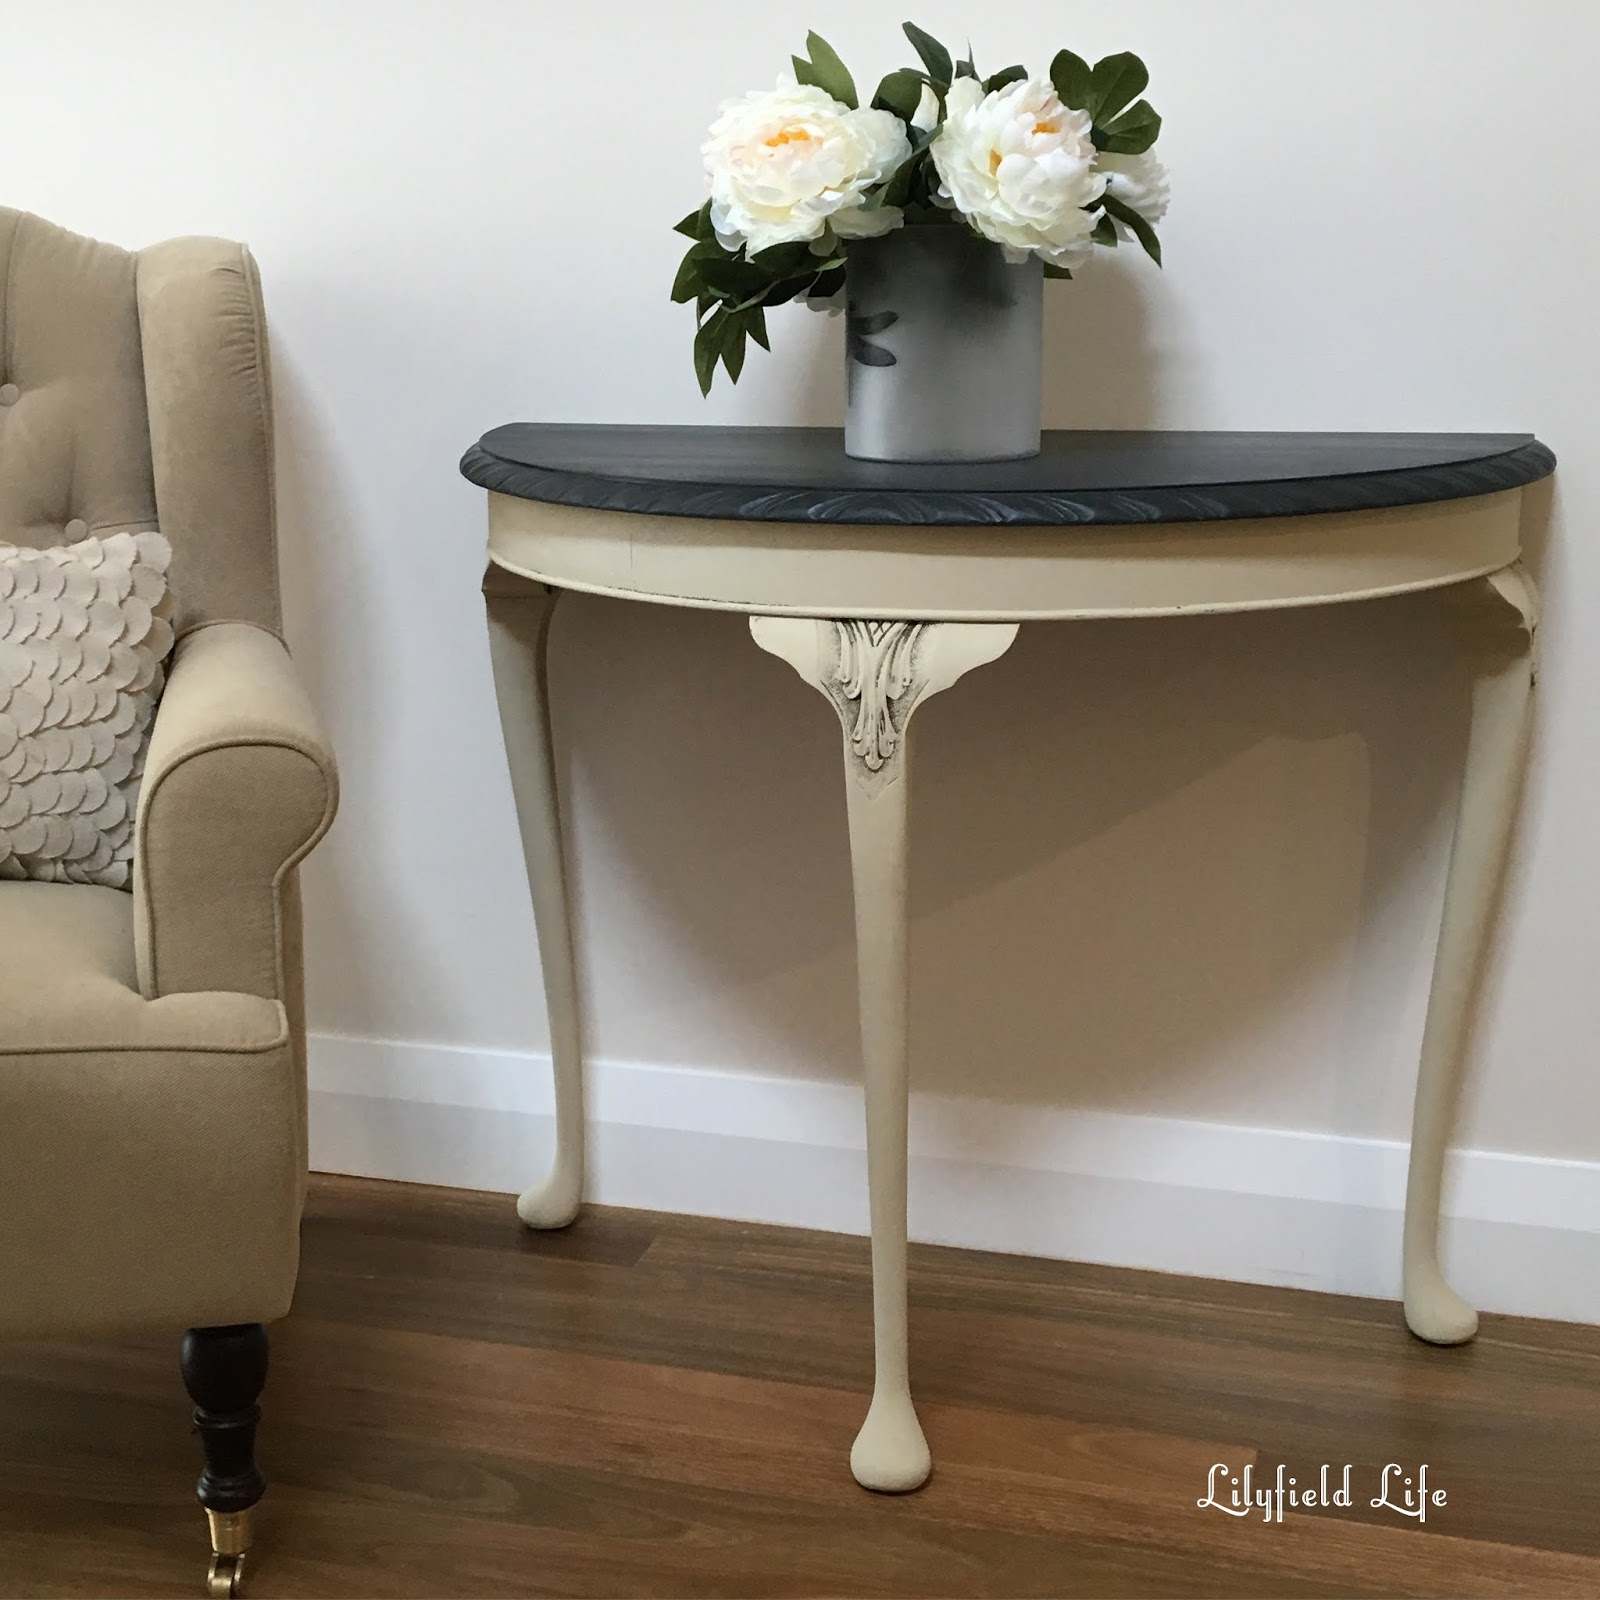 Gentil Painted Hall Table Plain Painted Hall Table Great For A Way Or Side Perhaps  Even